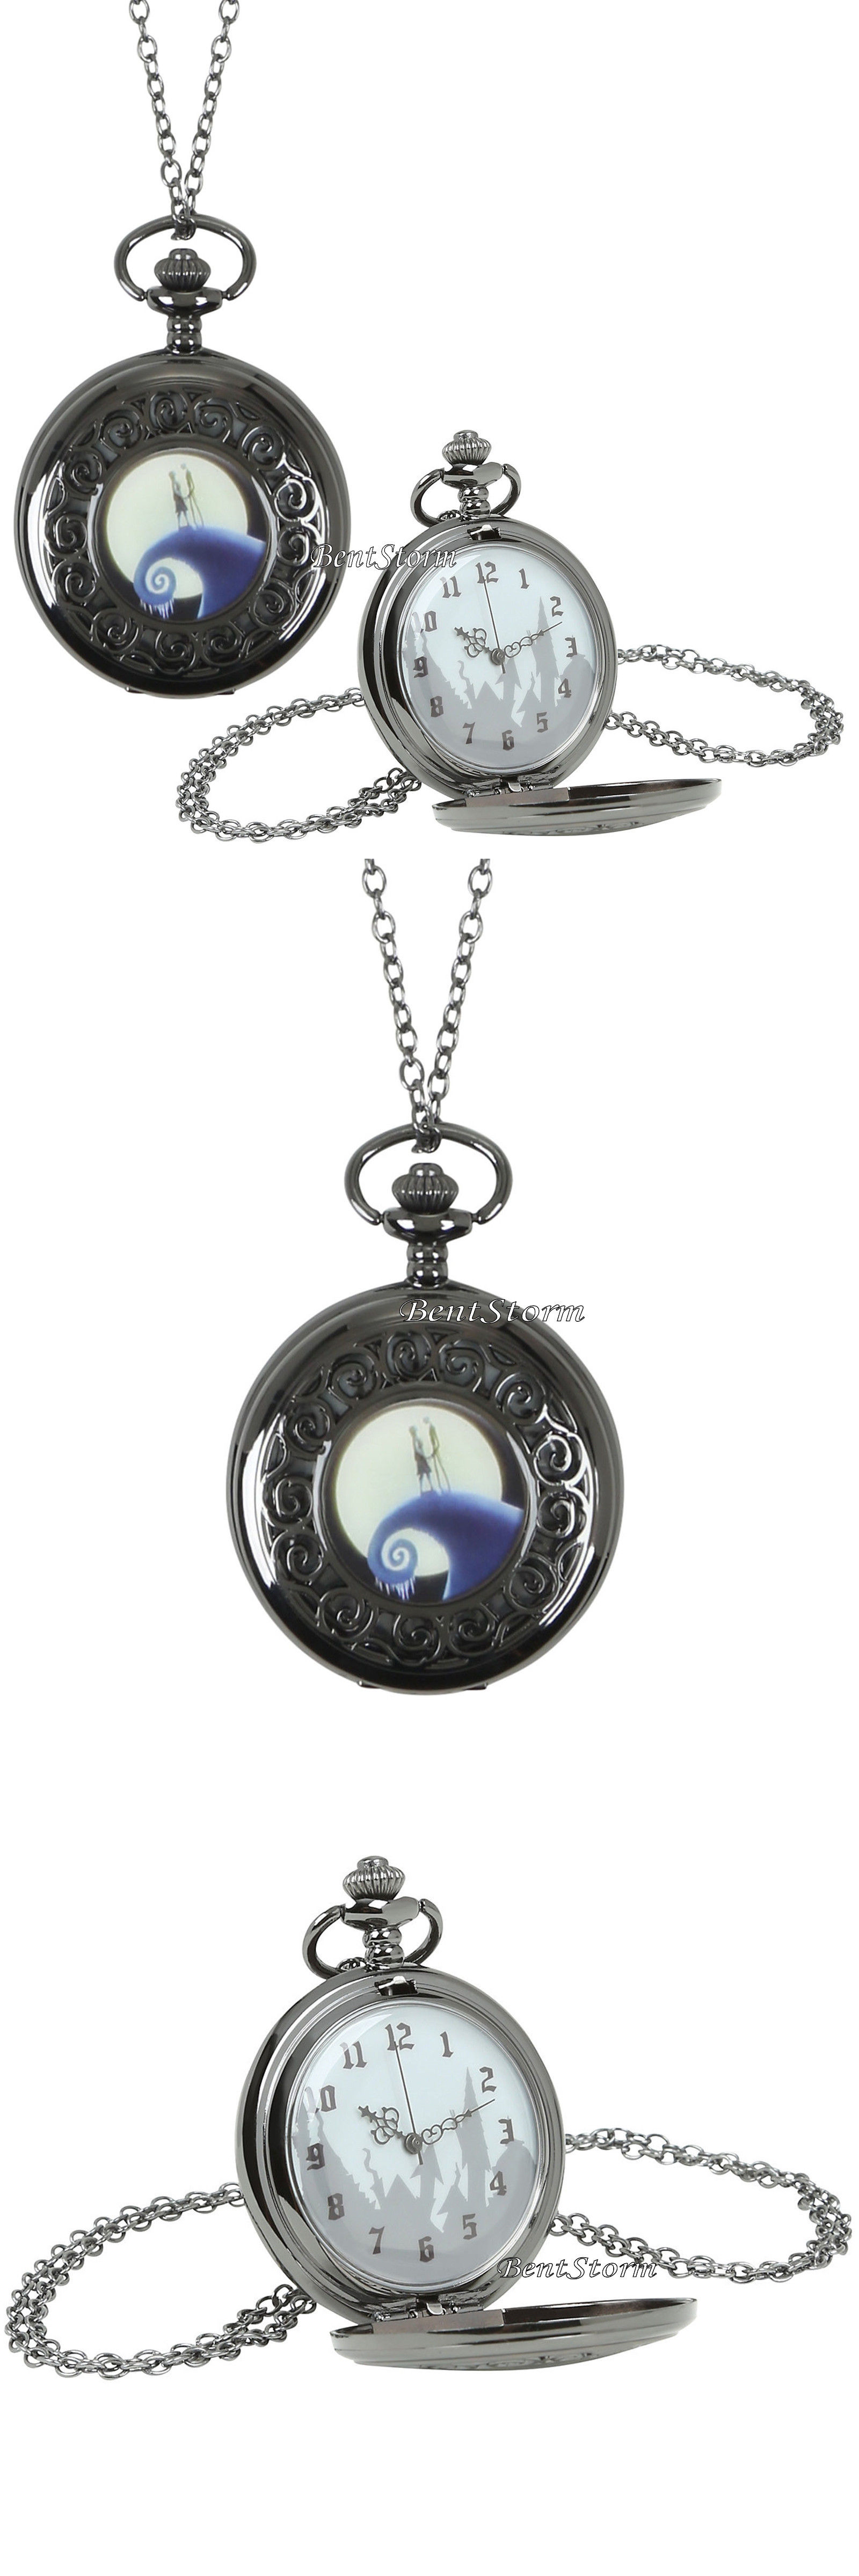 unisex women with pocket men quartz from friends watches prague item for clock fob chain retro necklace in watch astronomical pendant gift